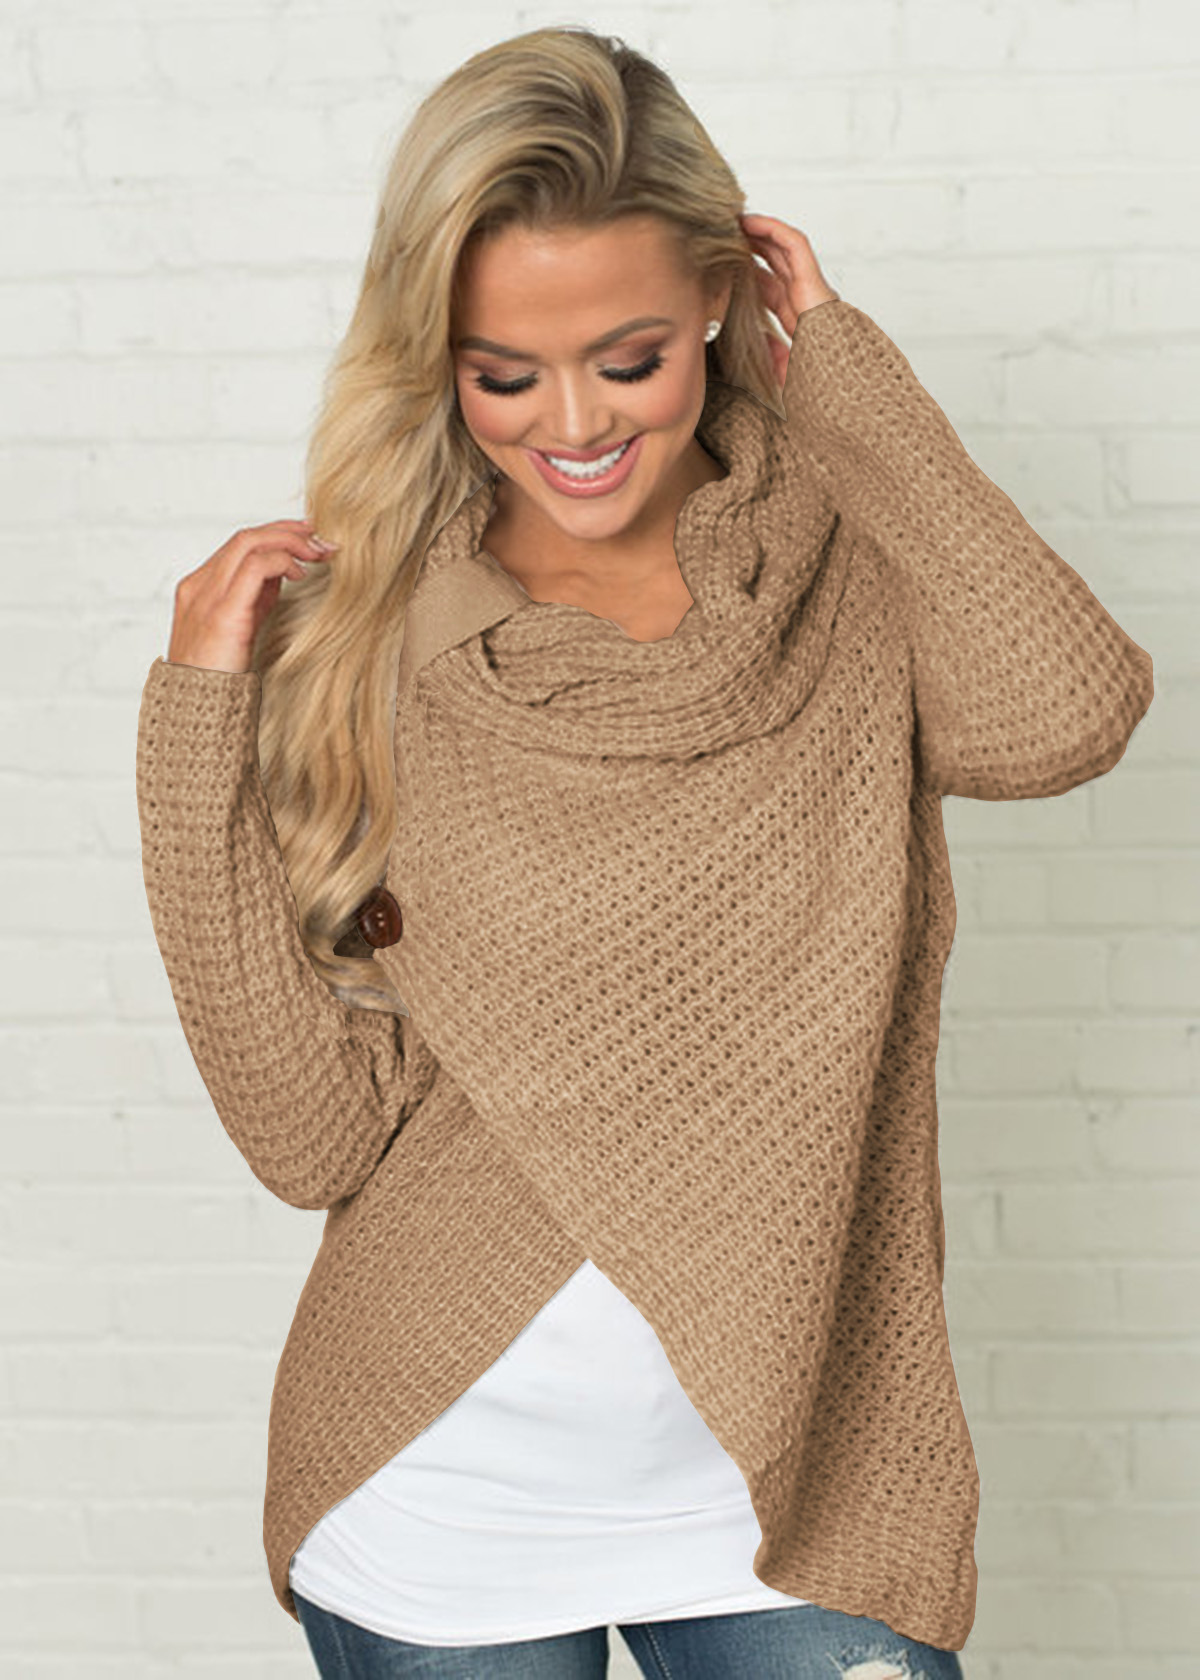 Women High Neck Sweater Buttons Loose Long Sleeve Asymmetrical Jumper Knitted Pullover Shirt khaki